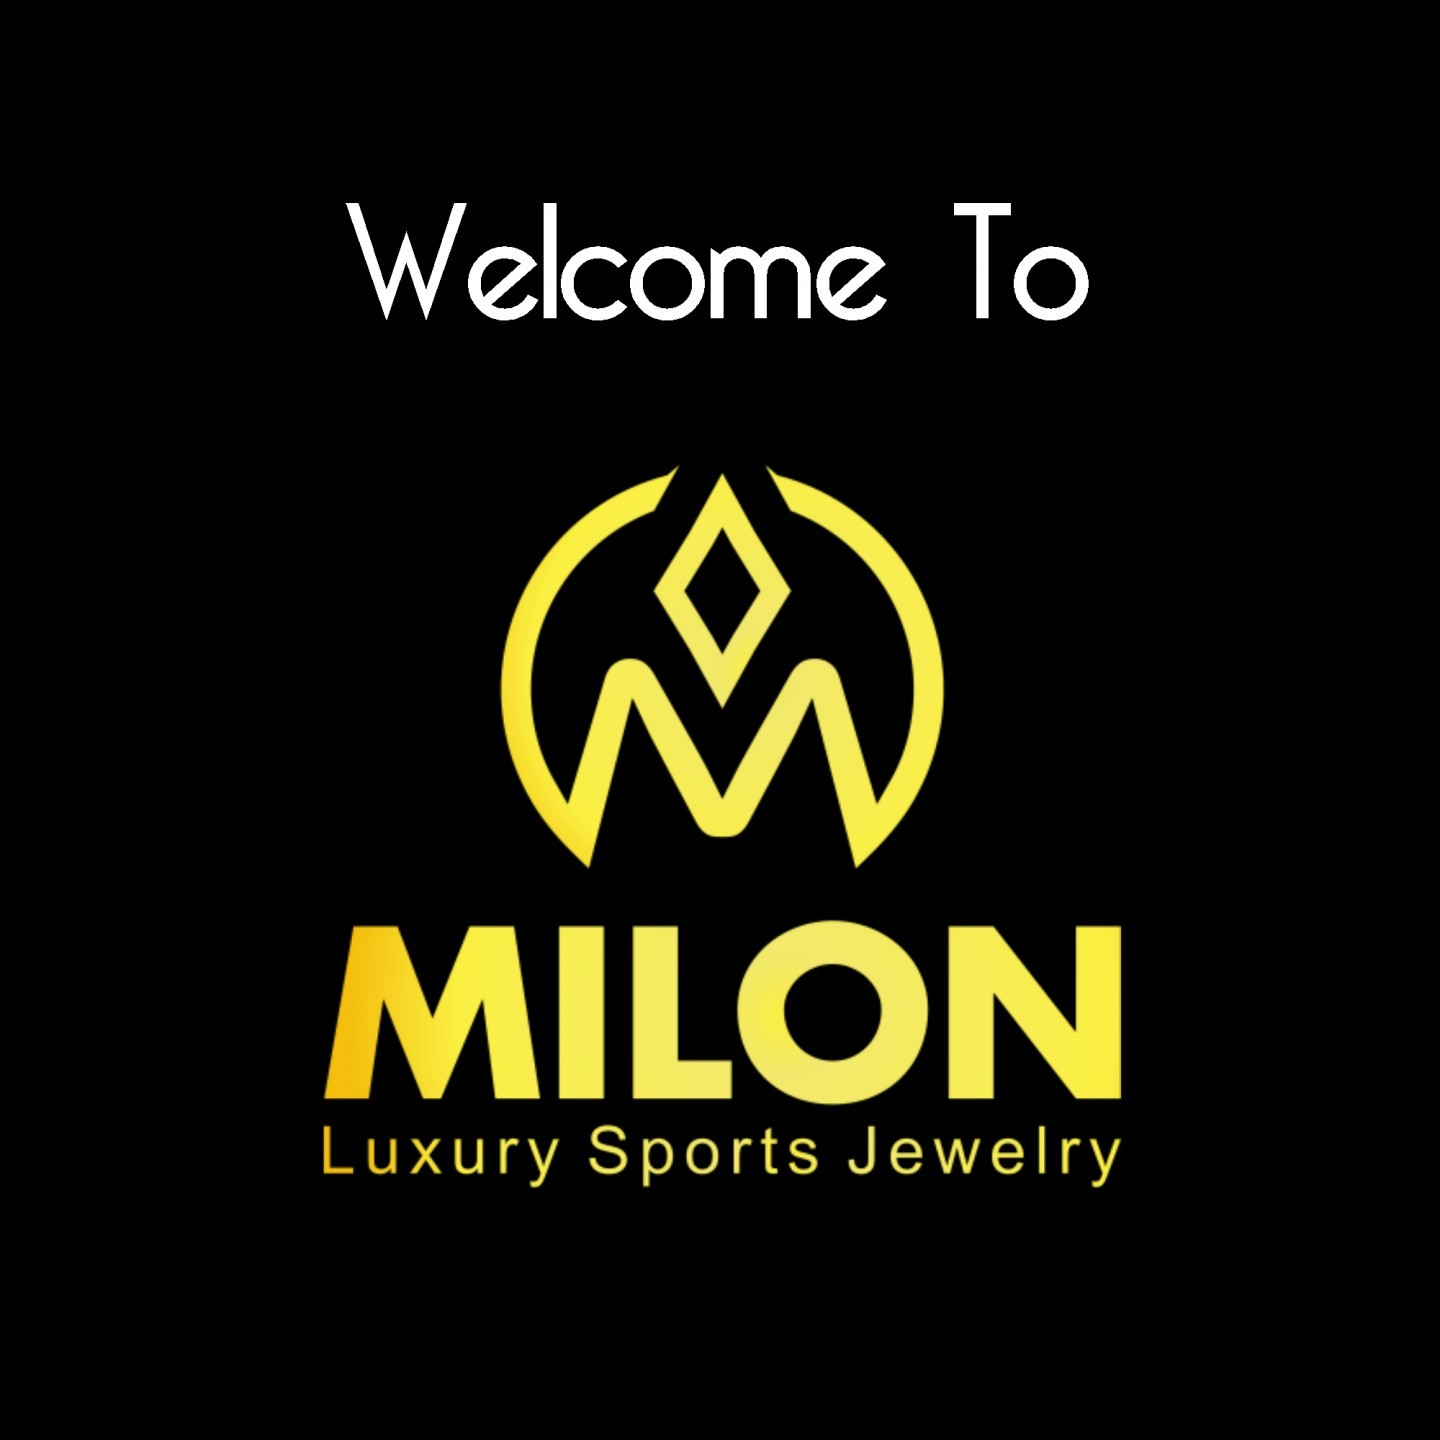 Welcome to Milon